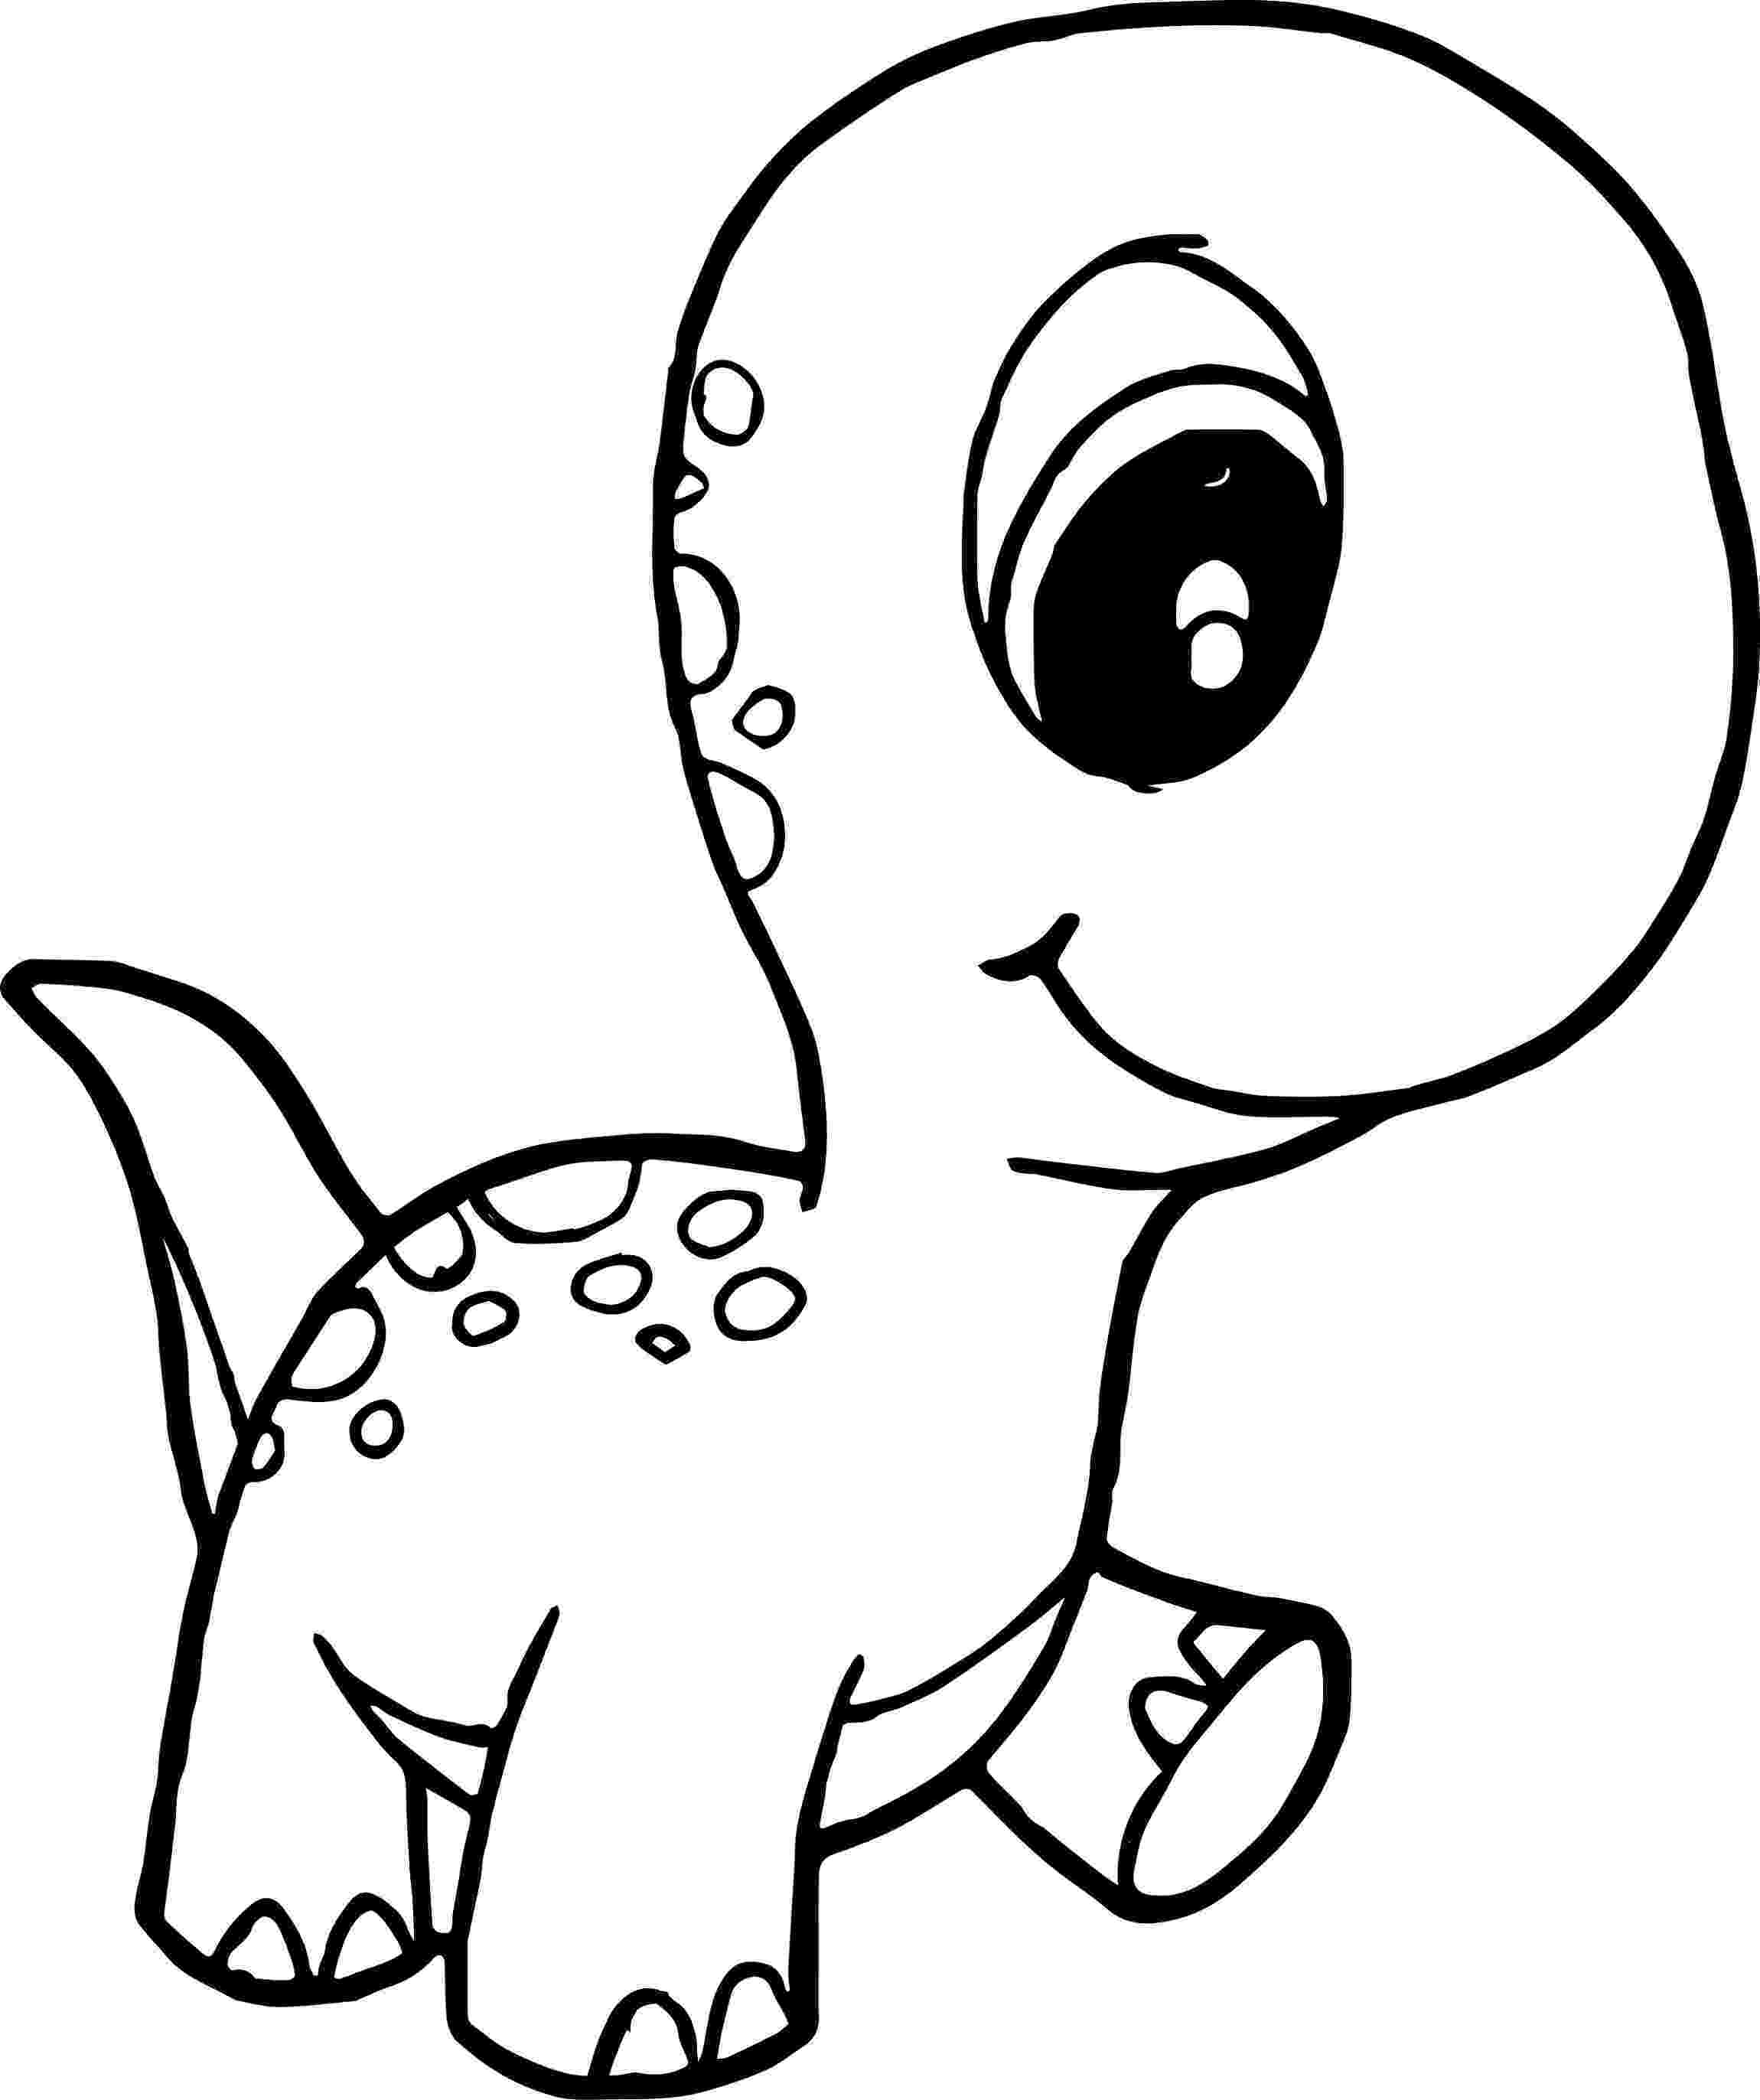 dinosuar coloring pages baby dinosaur coloring pages for preschoolers activity dinosuar pages coloring